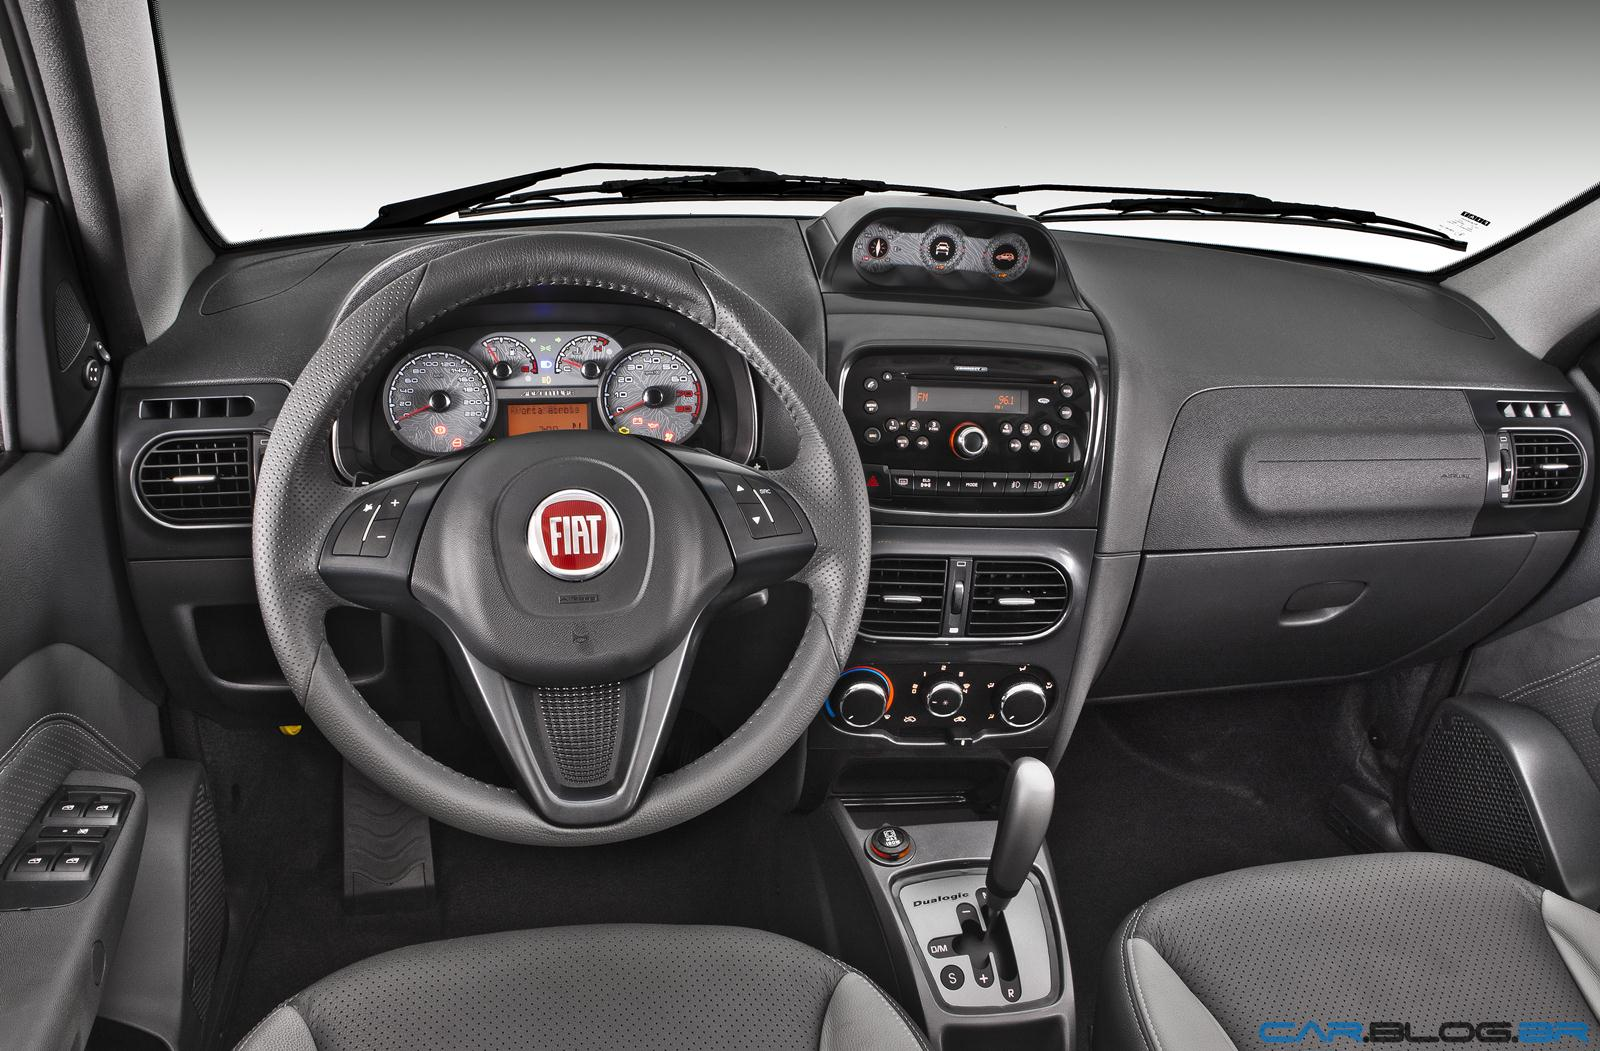 Novo fiat palio weekend 2013 attractive trekking e for Fiat idea nuevo precio